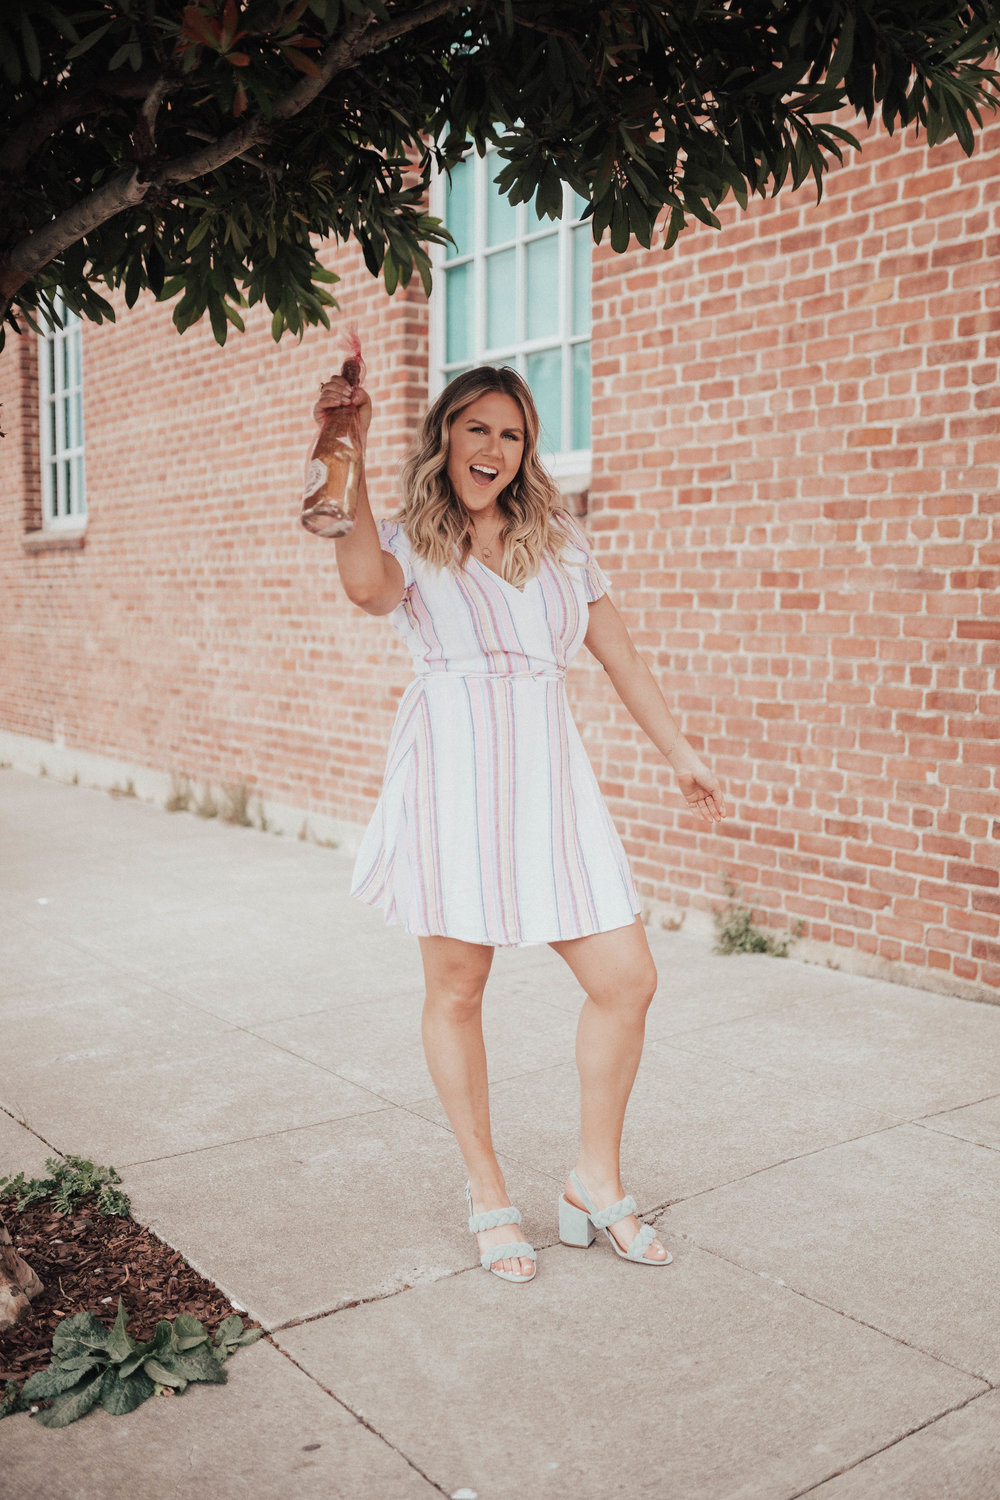 via Thea Forever21 Dress, Rebecca Minkoff heels, Sophia Sparkling Wine